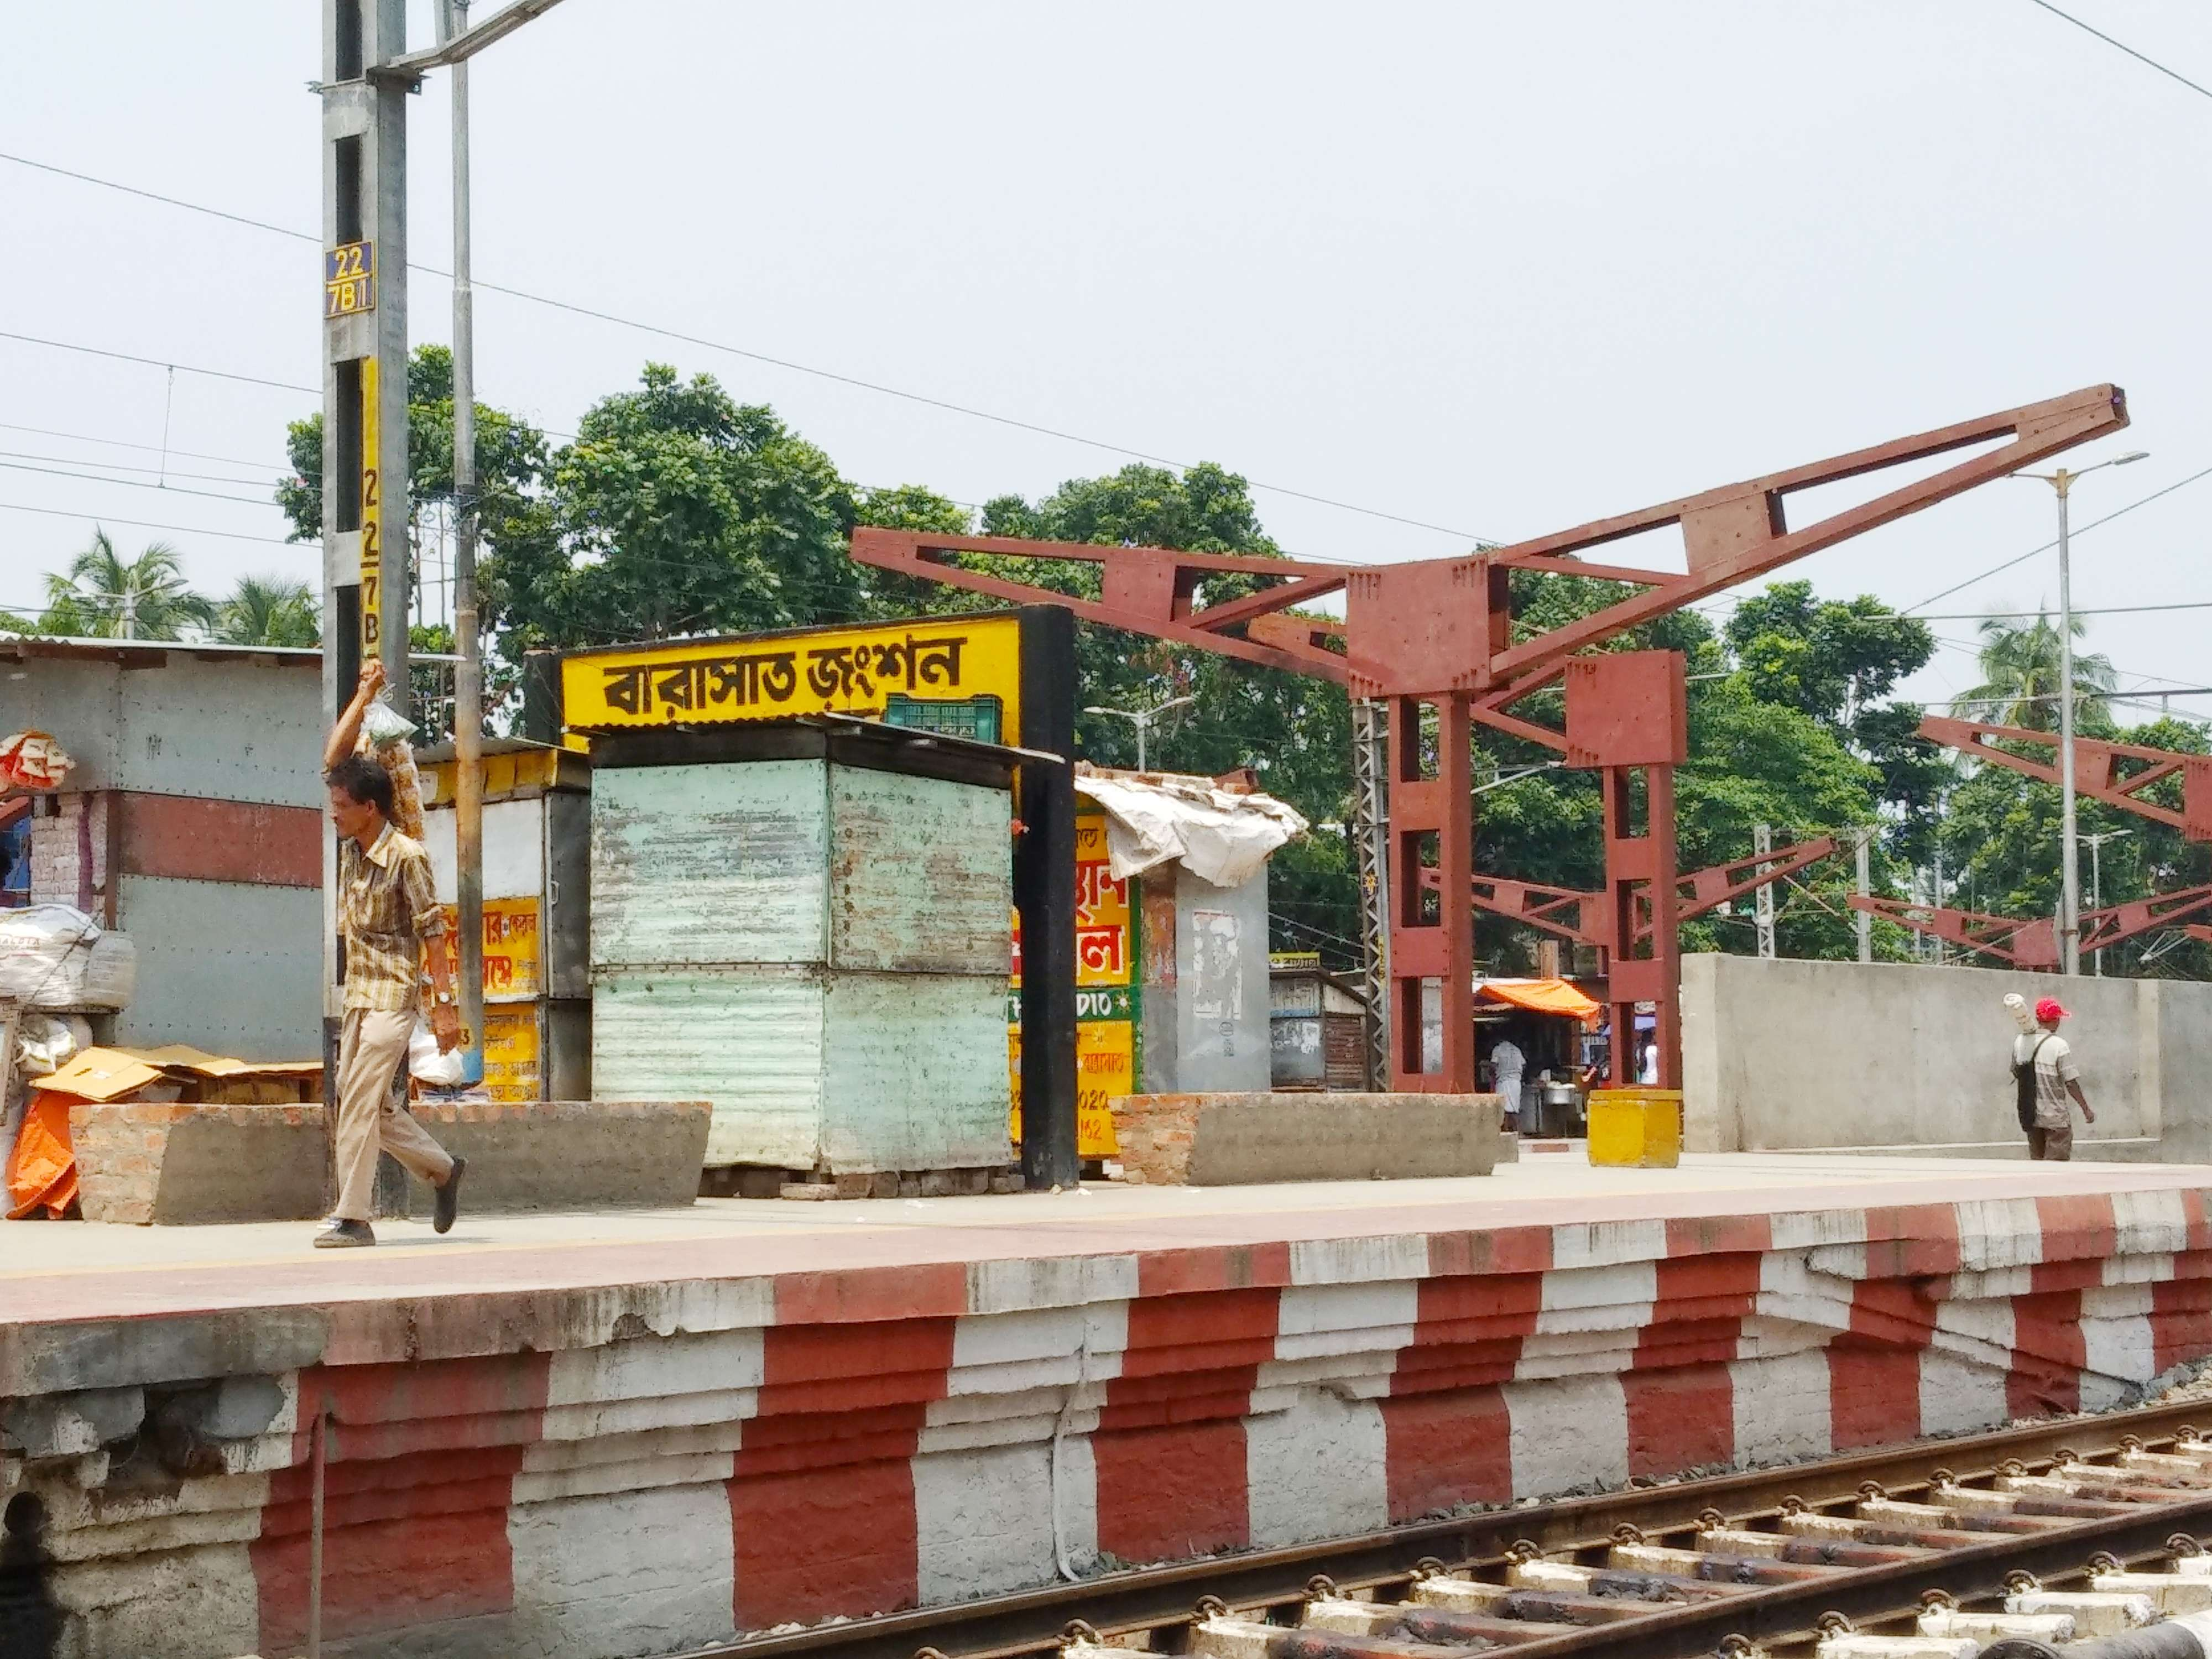 Station name almost covered by shop - Times of India